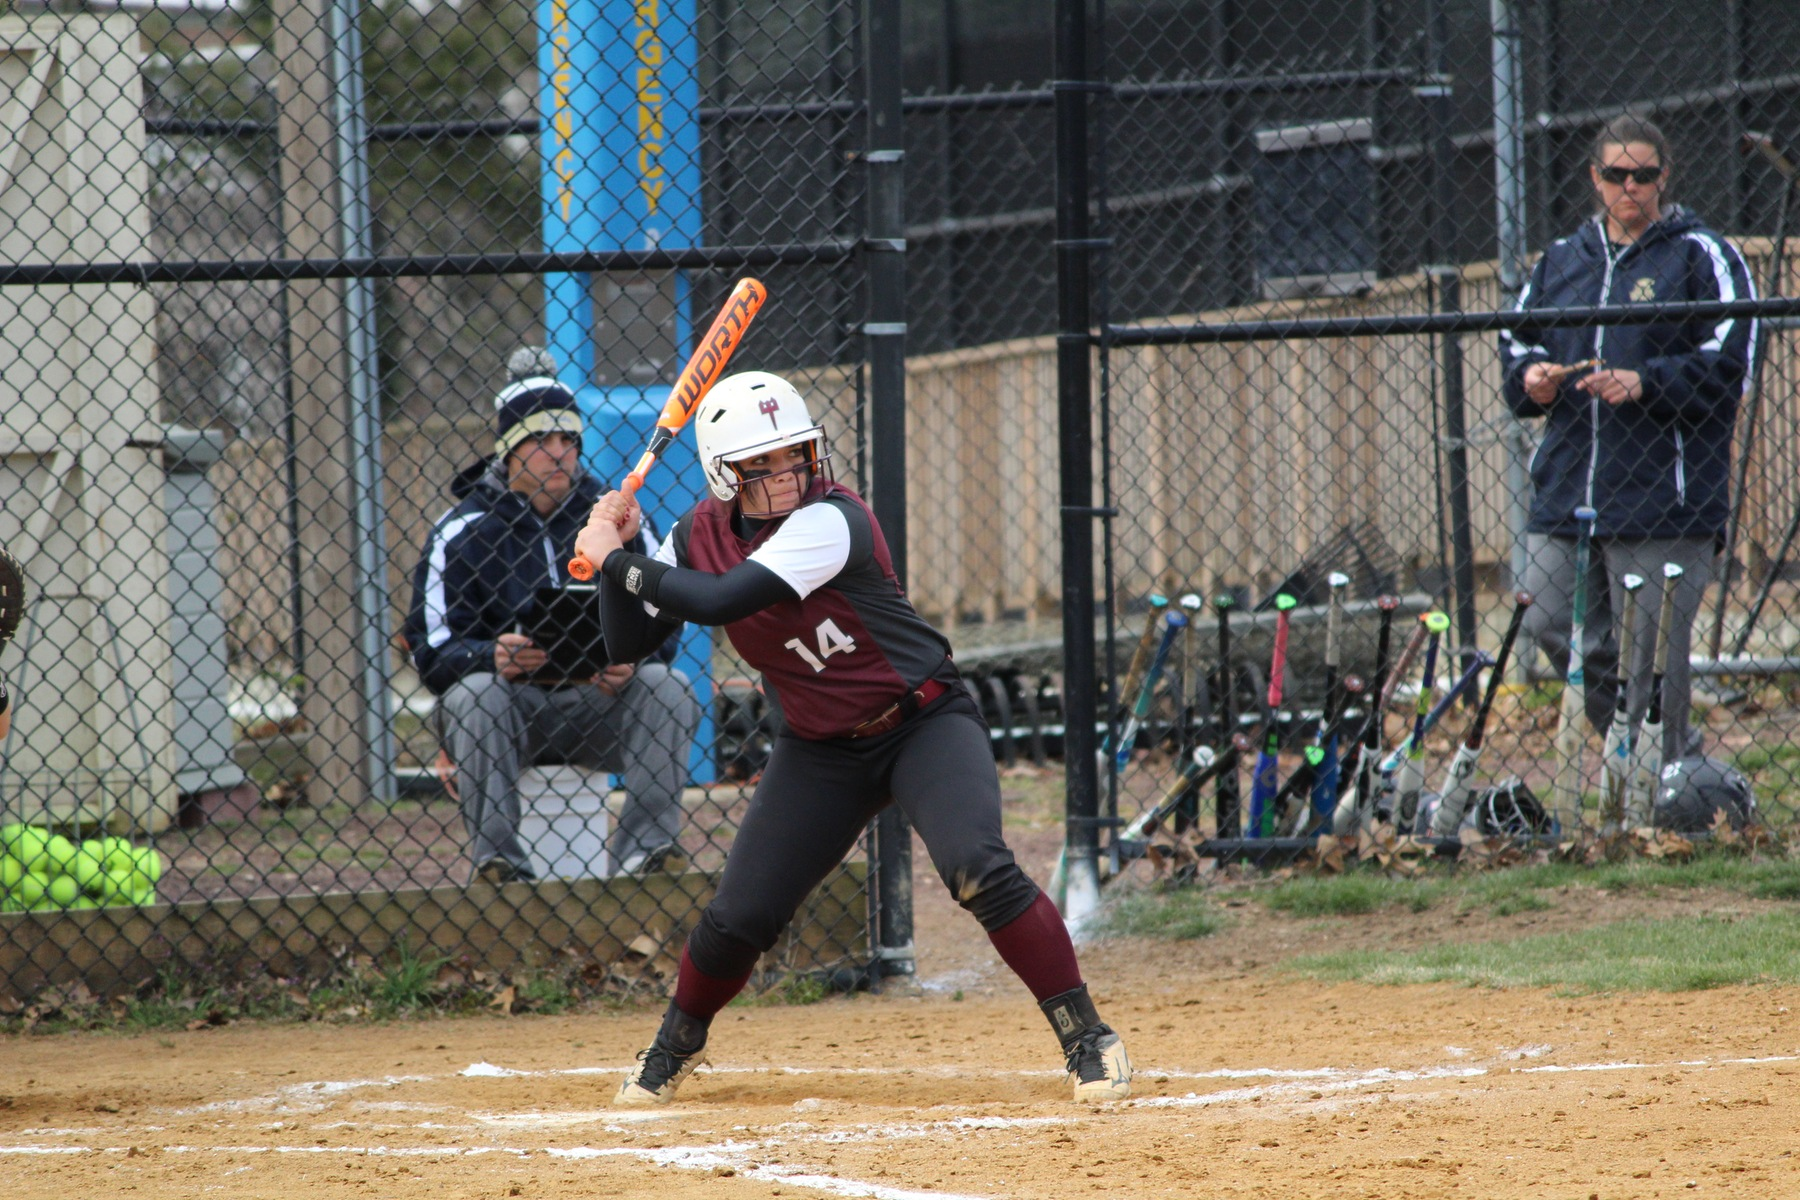 Devils Softball Late Rally Unable To Overtake Post